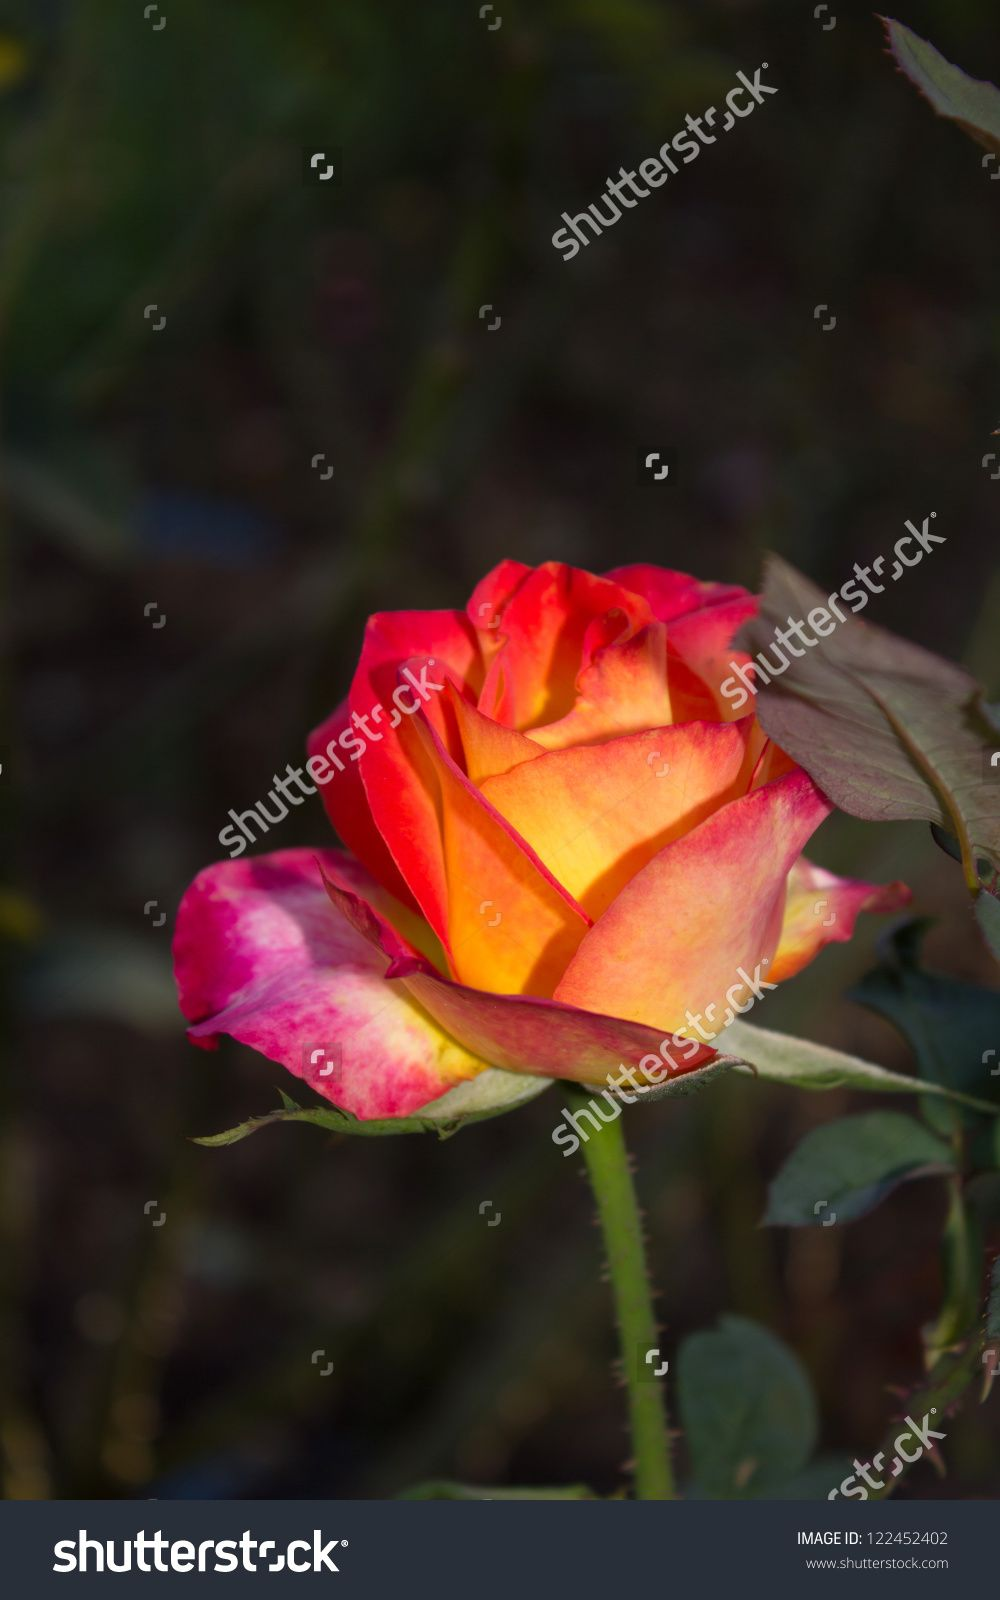 Background image src - Graden Rose On Tree Background Stock Photo From The Largest Library Of Royalty Free Images Only At Shutterstock